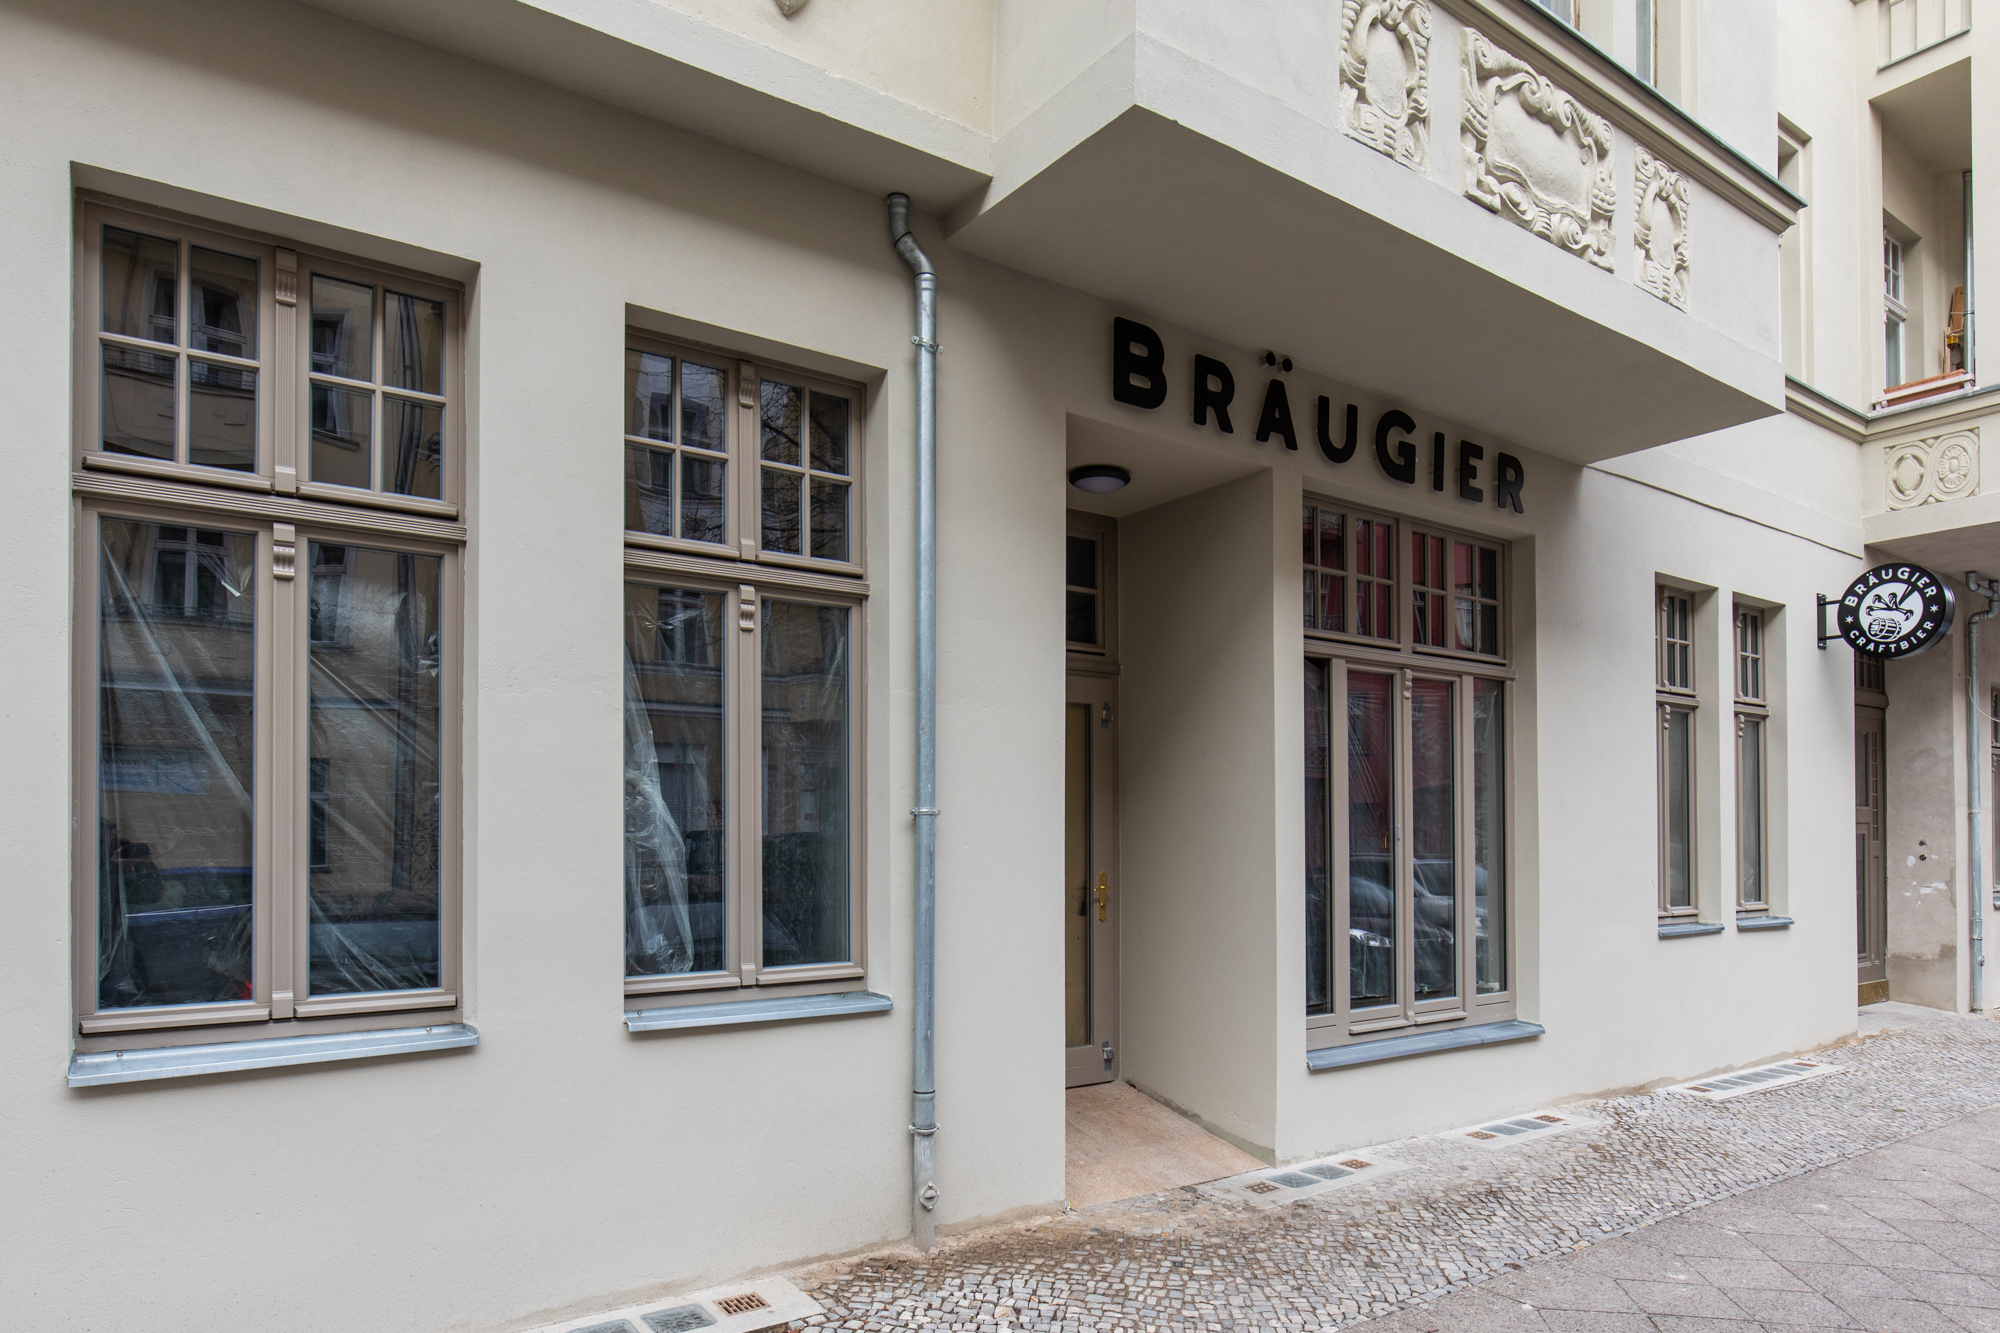 Bräugier BrewPub during renovations prior to the Bräugier BrewPub opening event on 2 April 2019